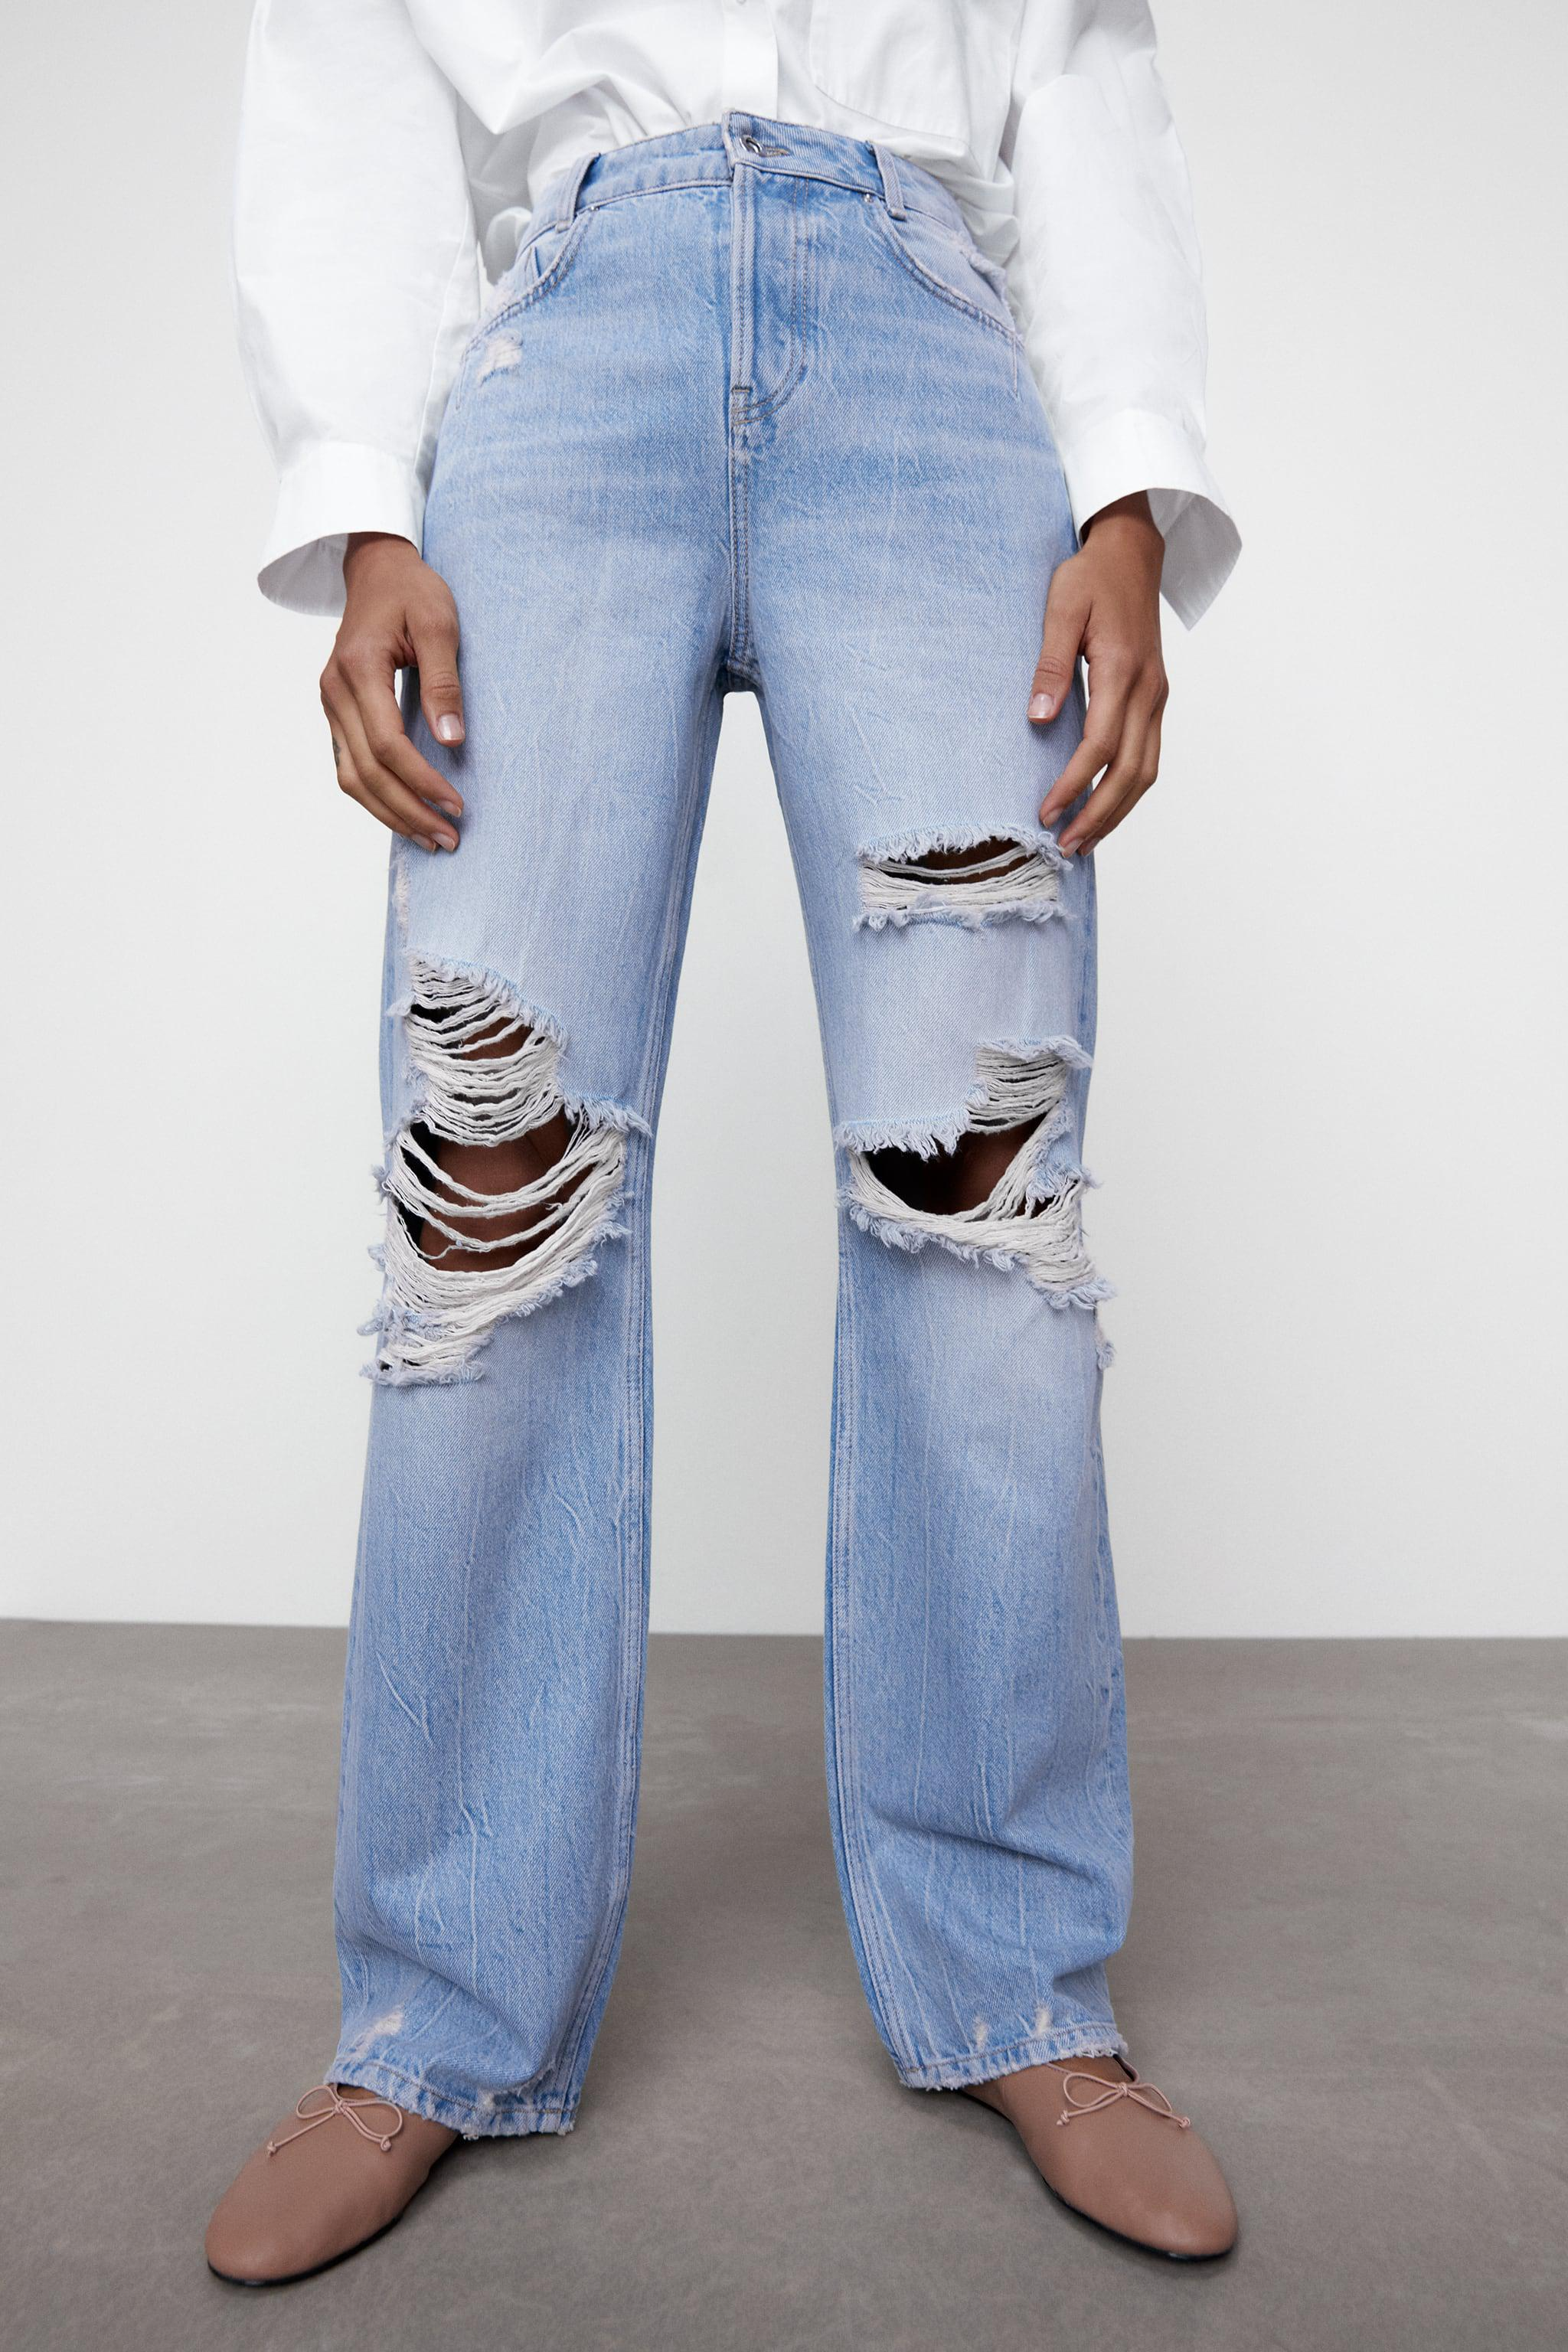 Z1975 HI-RISE STRAIGHT LEG JEANS WITH RIPS 1